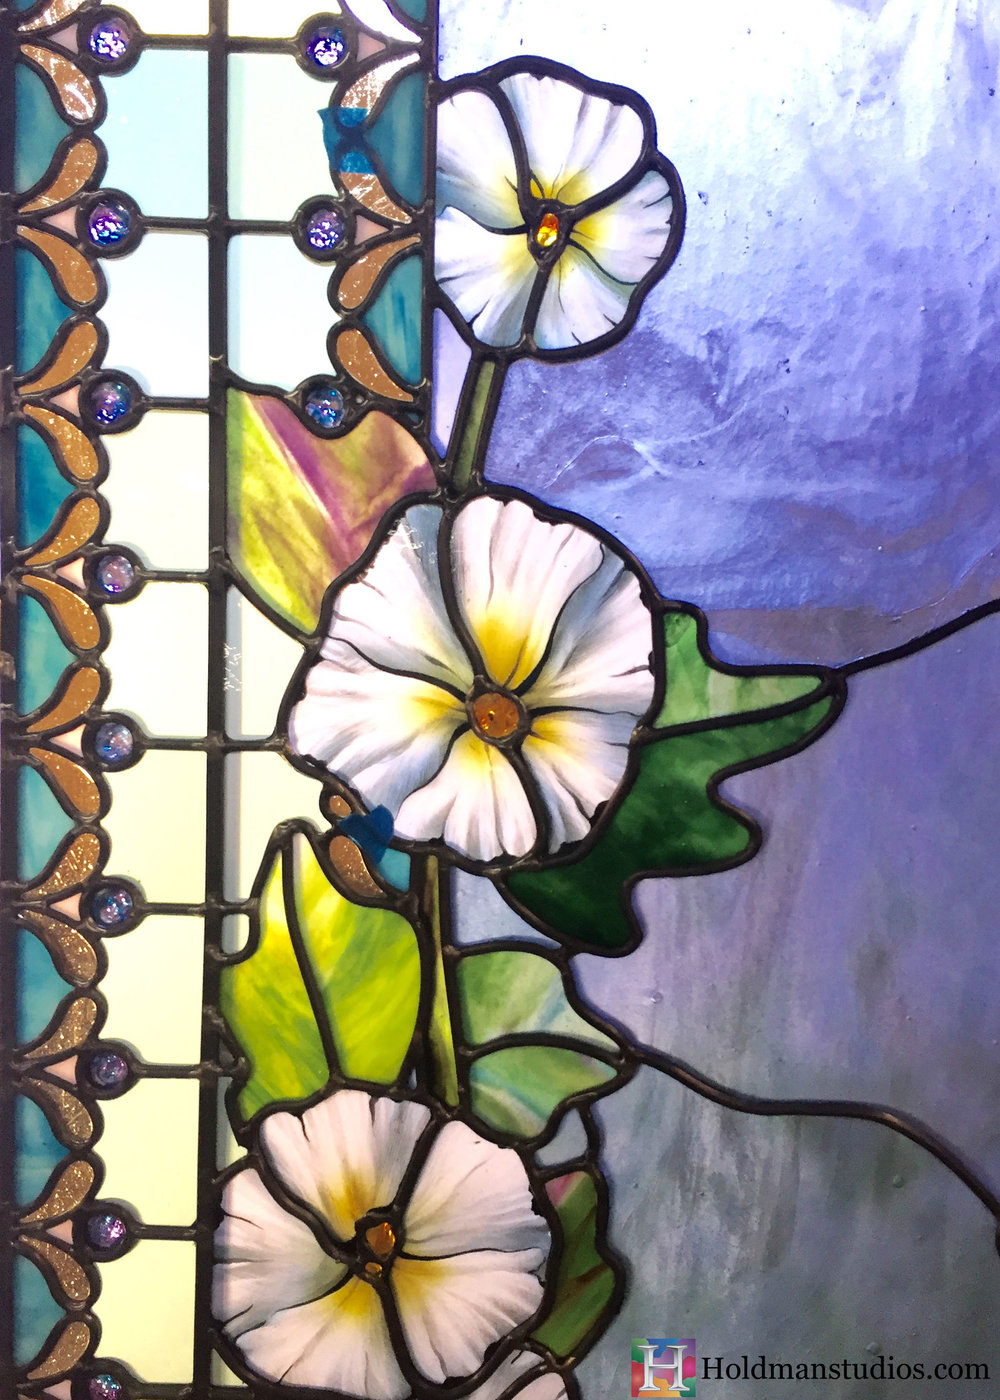 Holdman-Studios-Stained-Glass-Paris-LDS-Temple-Cornflower-Blue-Lily-Flowers-Leaves-Windows-Crop.jpg